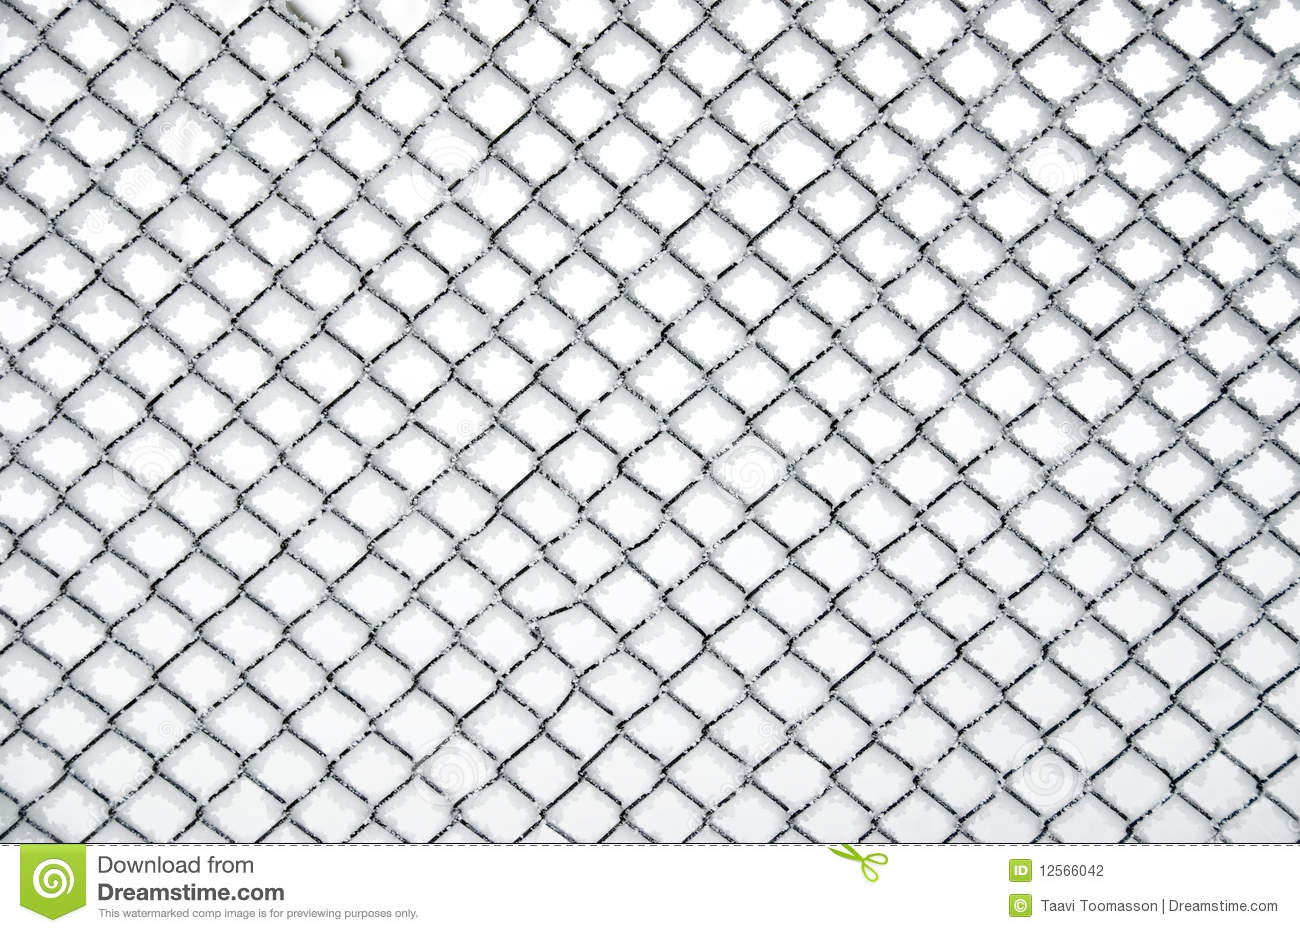 Texture Of Froz... Chainlink